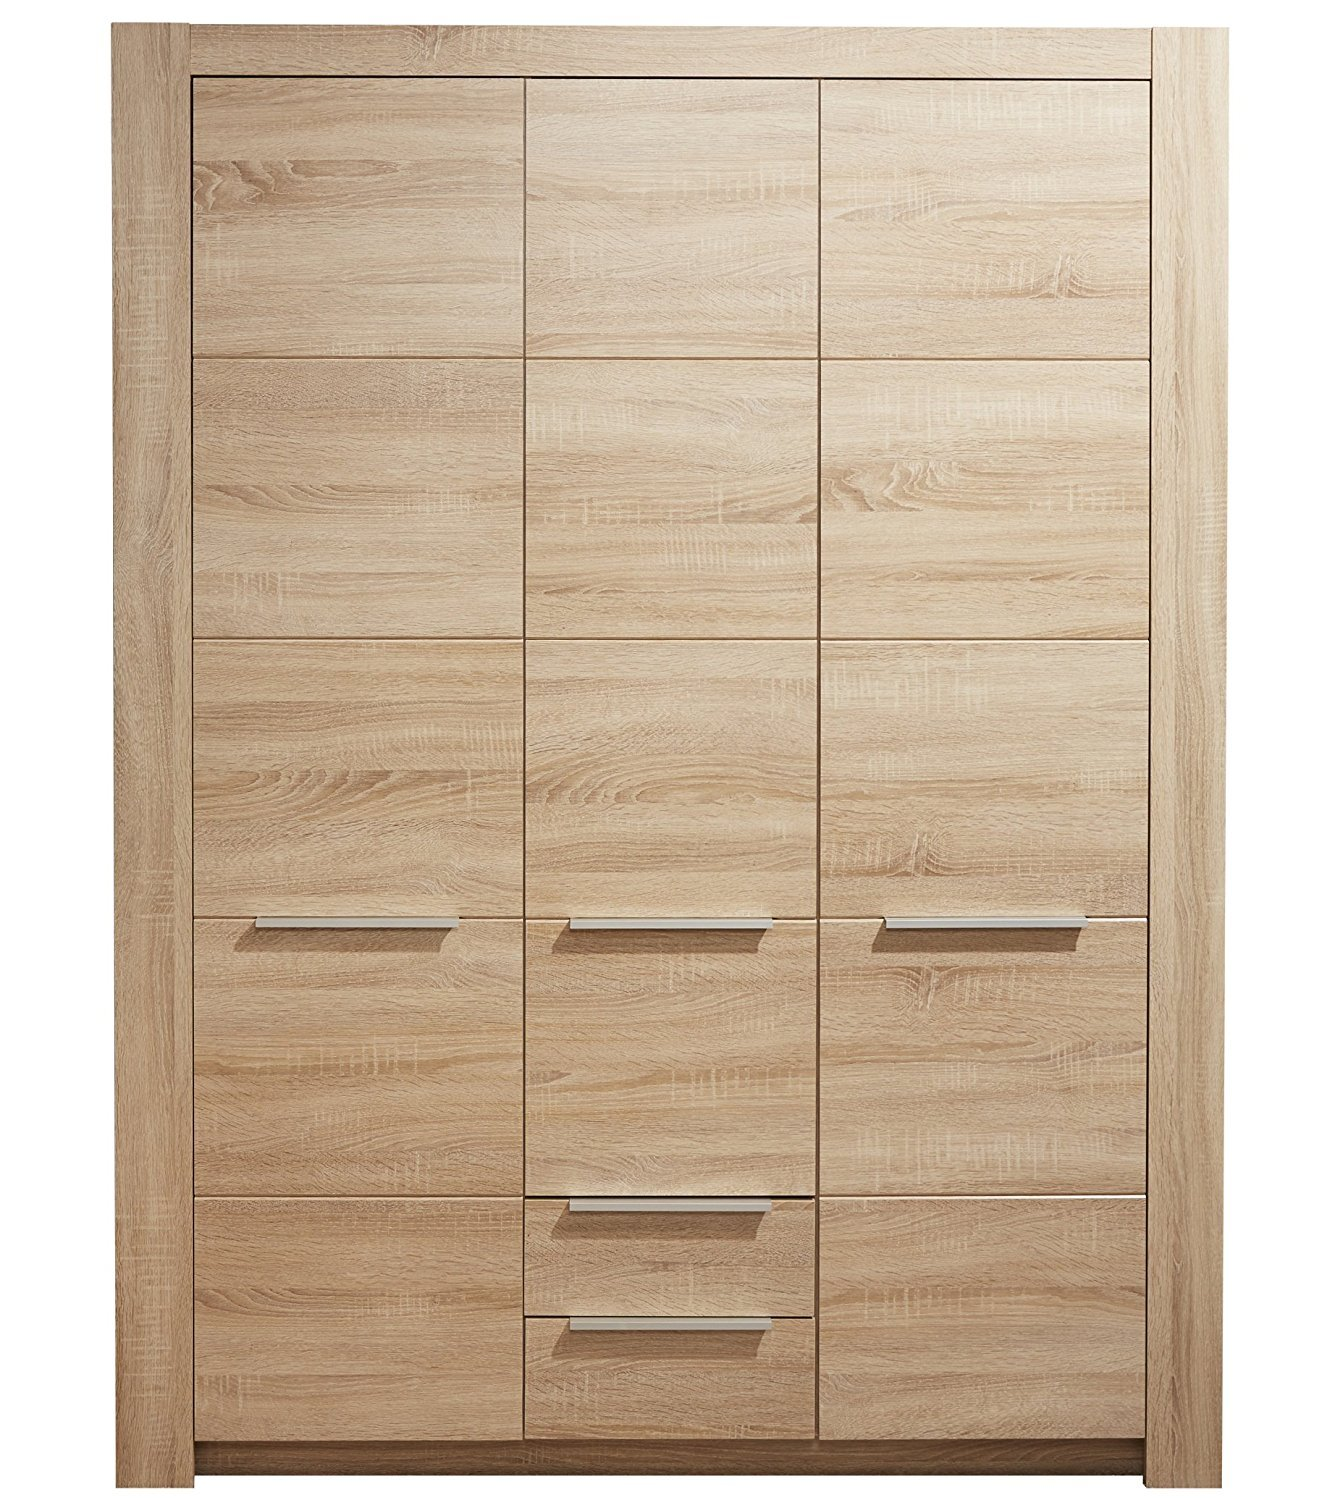 3trg kleiderschrank carlotta eiche sonoma hell kinder baby zimmer schrank m bel kaufen bei dtg. Black Bedroom Furniture Sets. Home Design Ideas